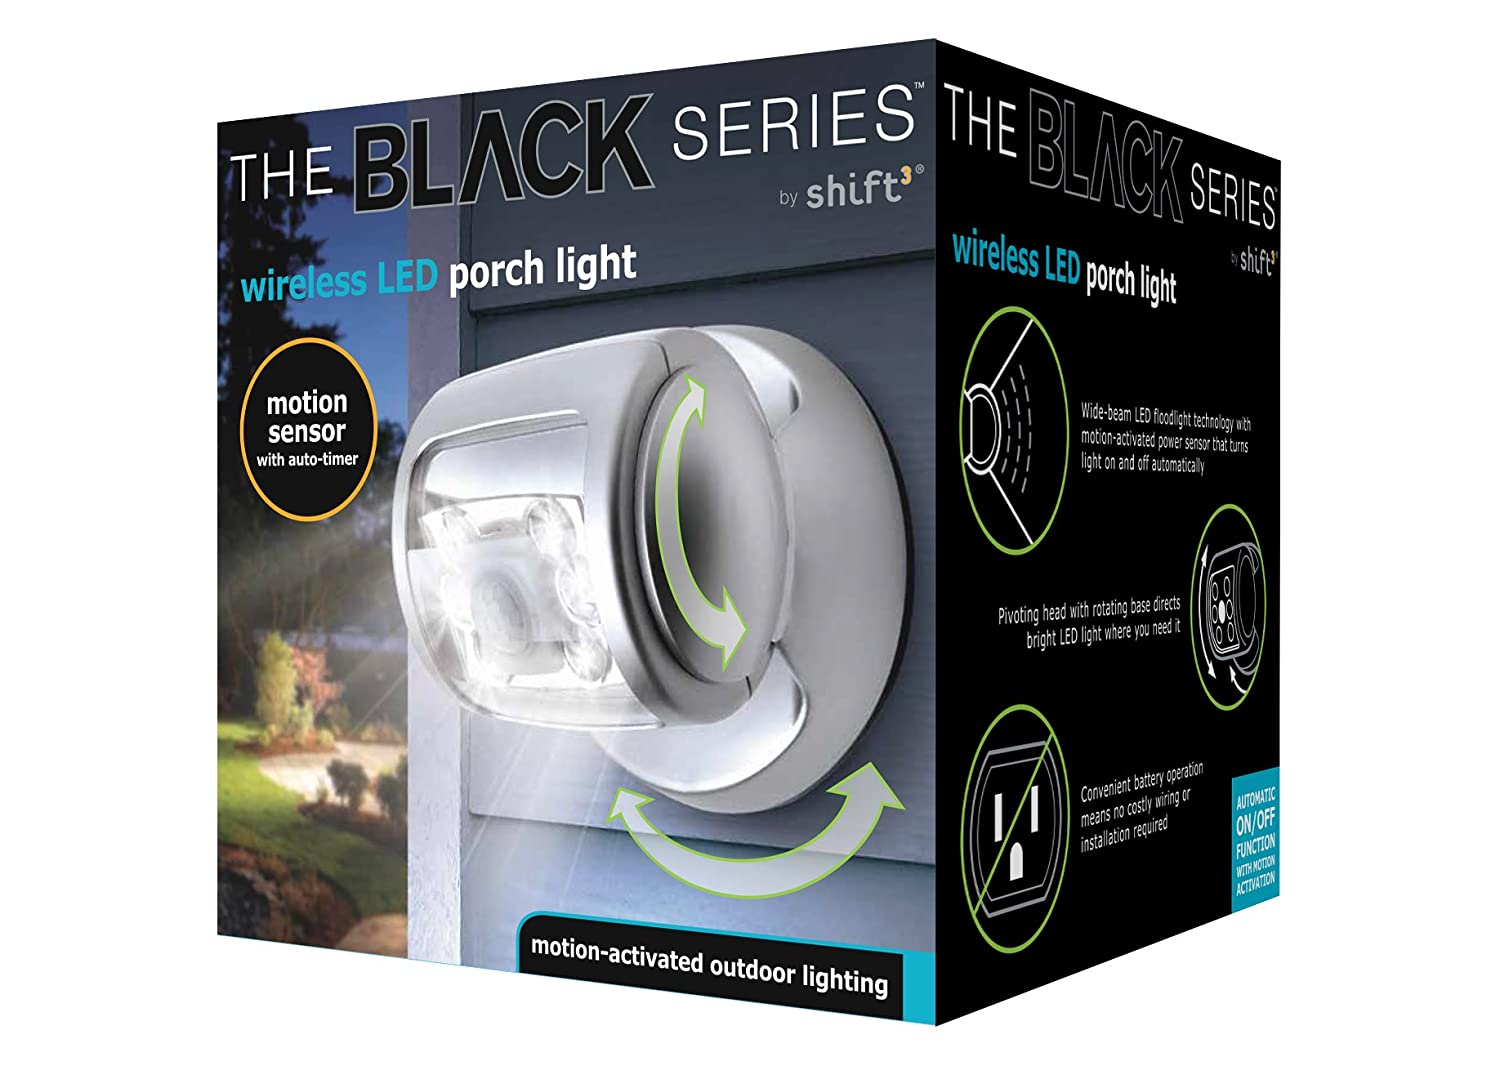 Wireless Led Motion Sensor Porch Light Super Bright Wiring Outdoor And With Auto Timer Water Proof Security Used Outdoors